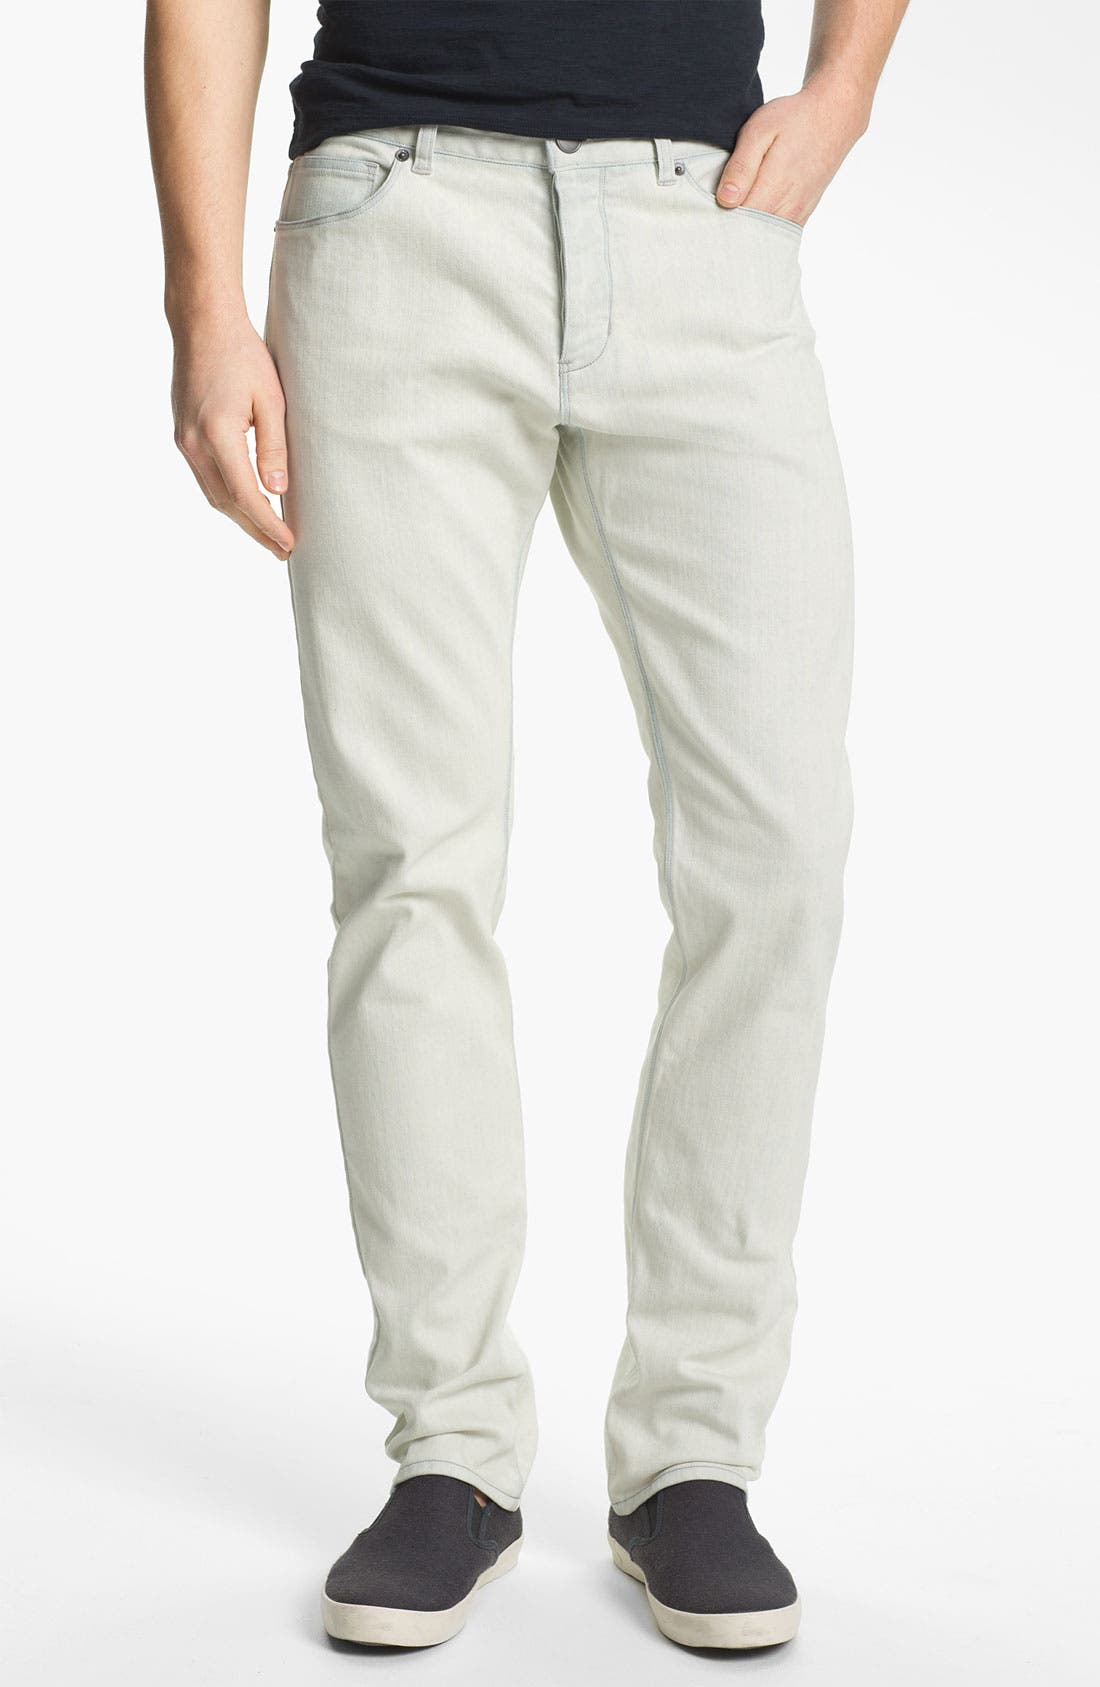 Alternate Image 1 Selected - Theory 'Raffi Burliegh' Slim Leg Jeans (Bleached Out)